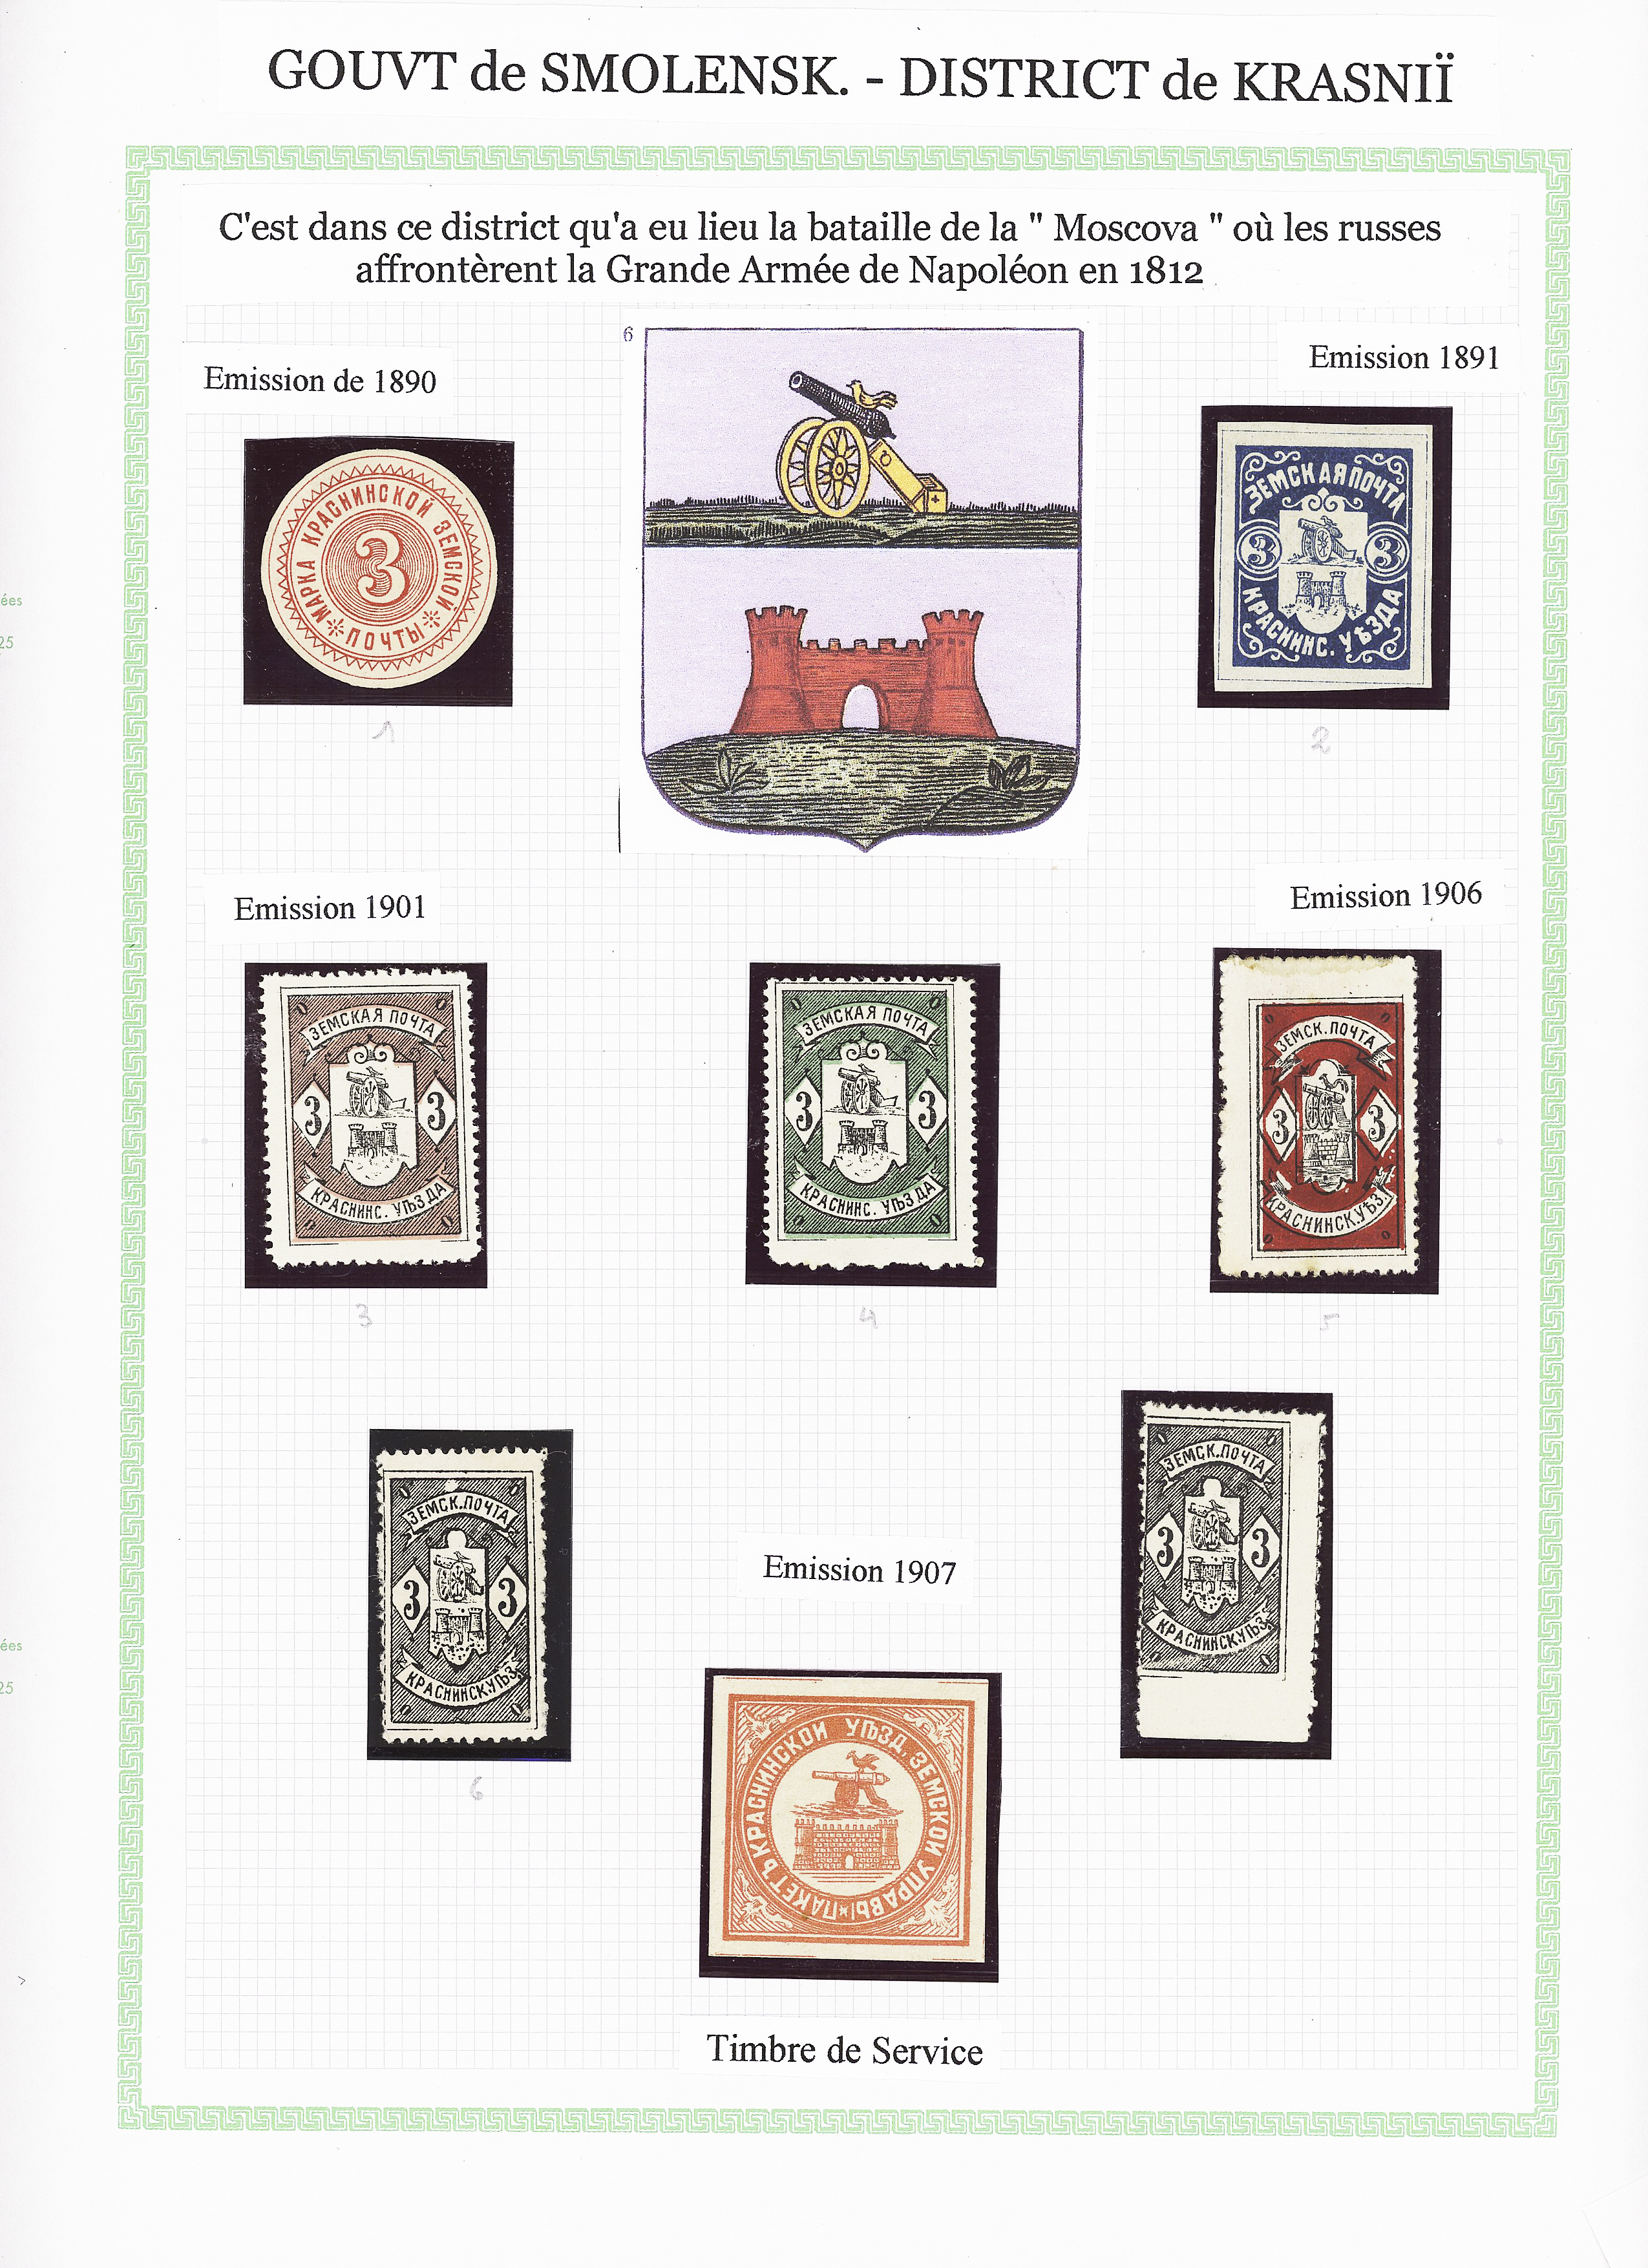 Lot 484 - Eastern Europe » RUSSIA - ZEMSTVOS » Krasny (Smolensk Government)  -  Le Timbre Classique SA SALE ON OFFERS N ° 37 PARIS